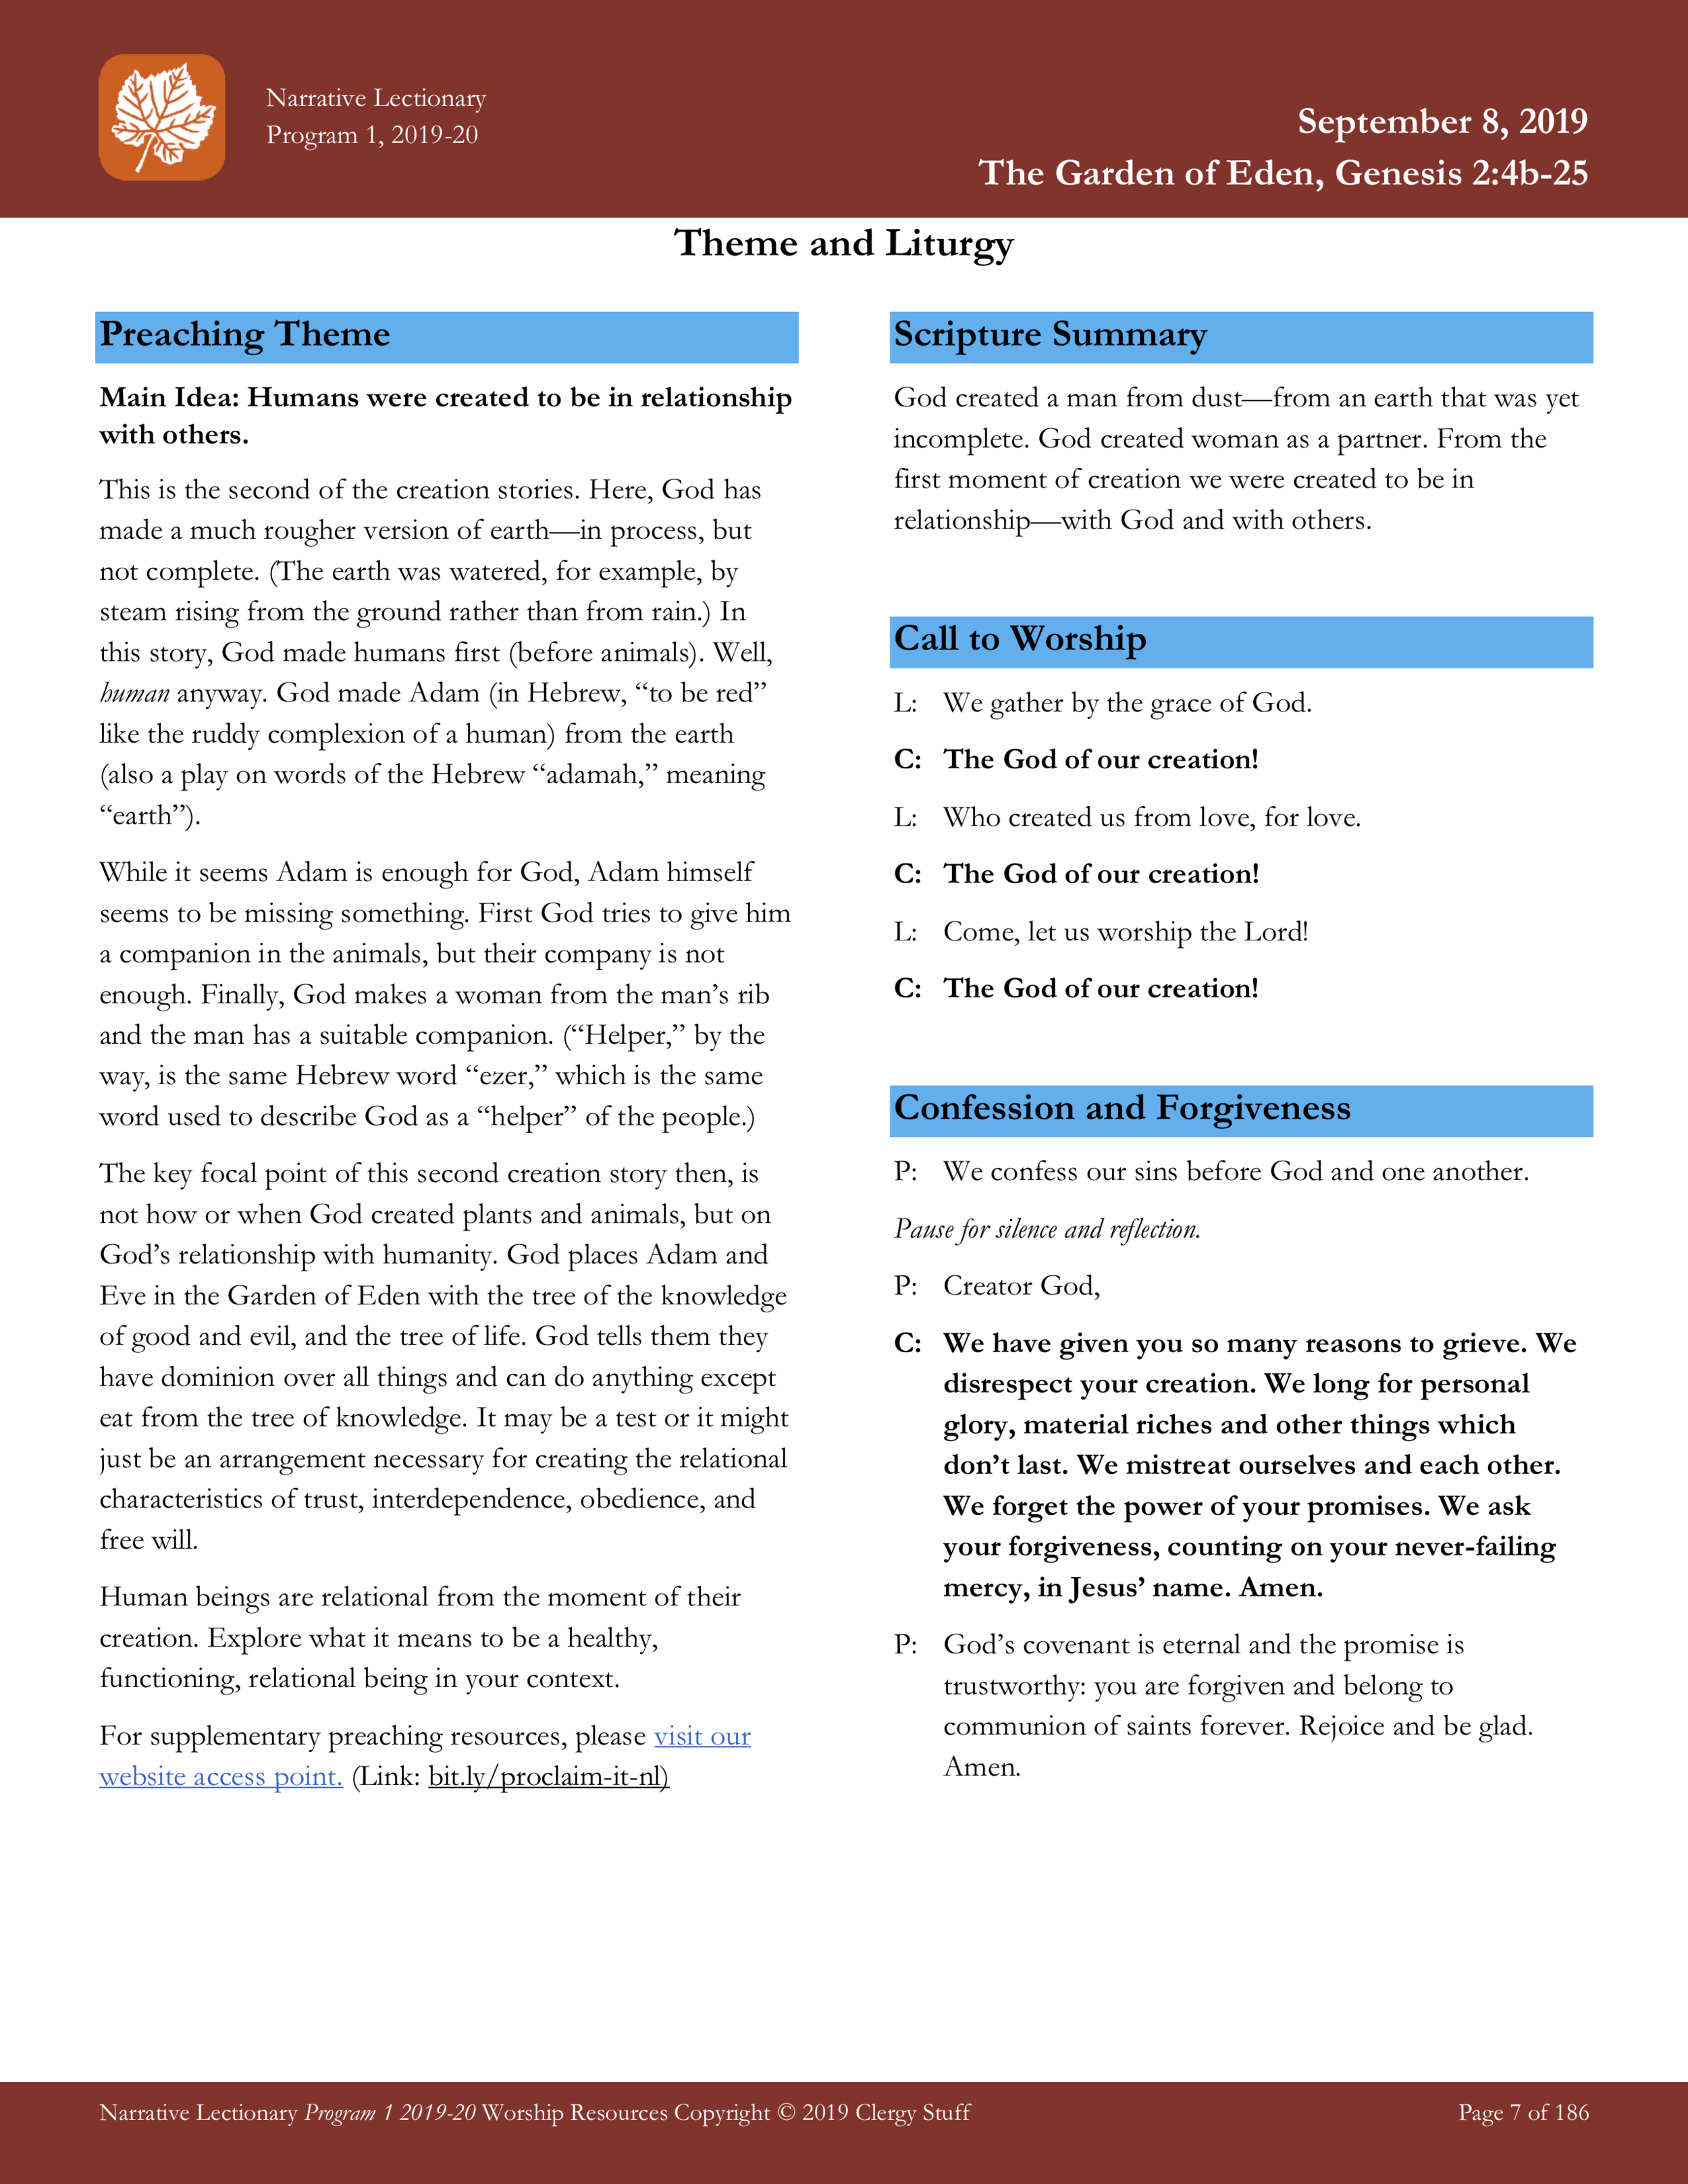 2019-20 program 1 worship resources NL copy (dragged) 6.png